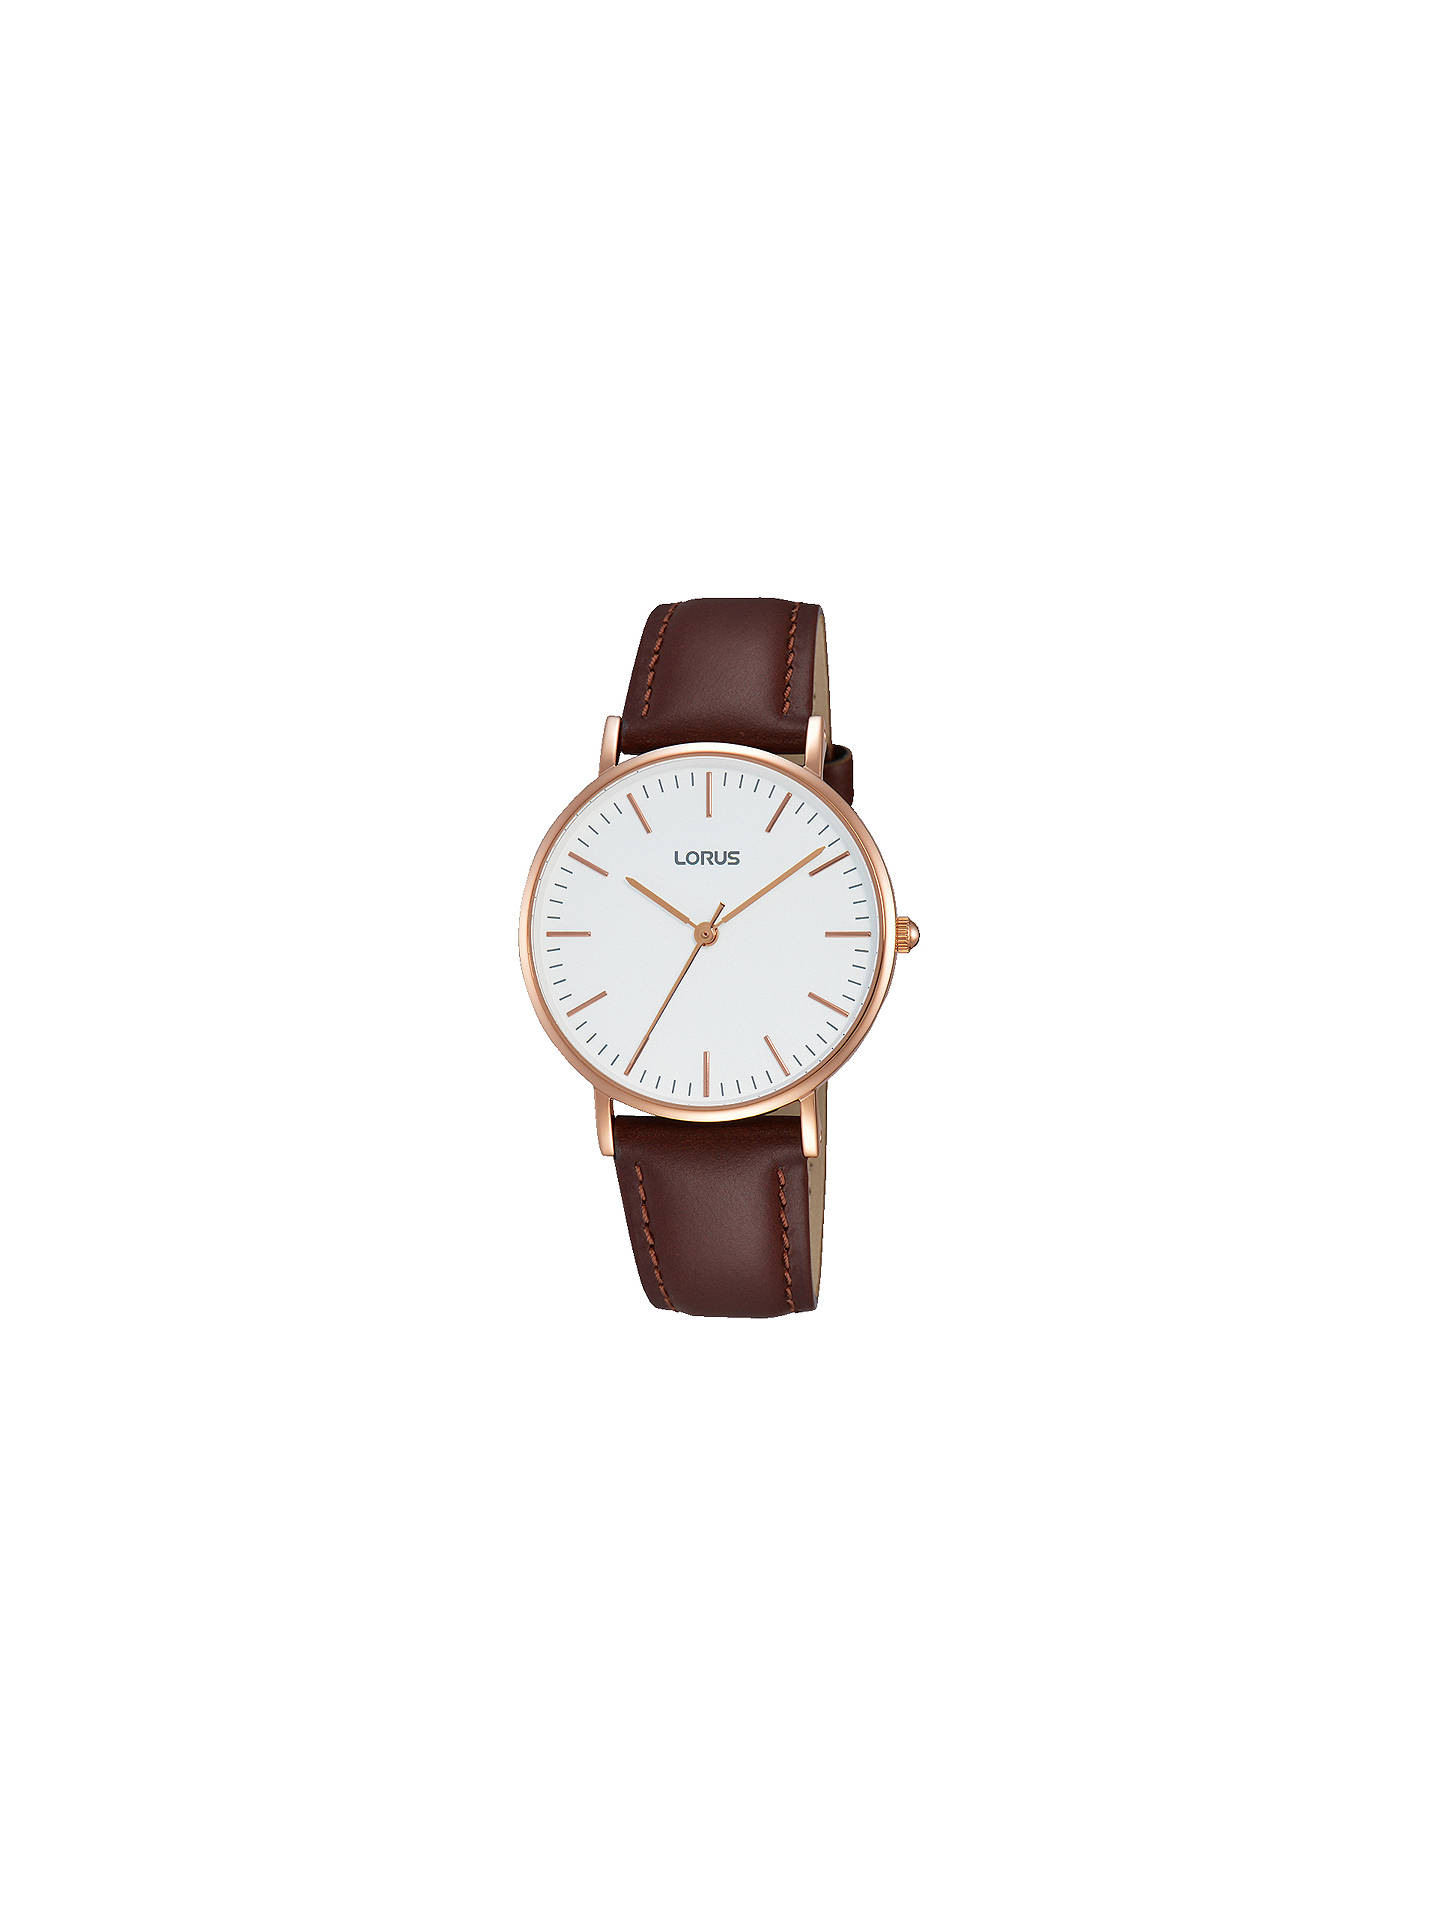 BuyLorus RH886BX9 Women's Leather Strap Watch, Brown/White Online at johnlewis.com